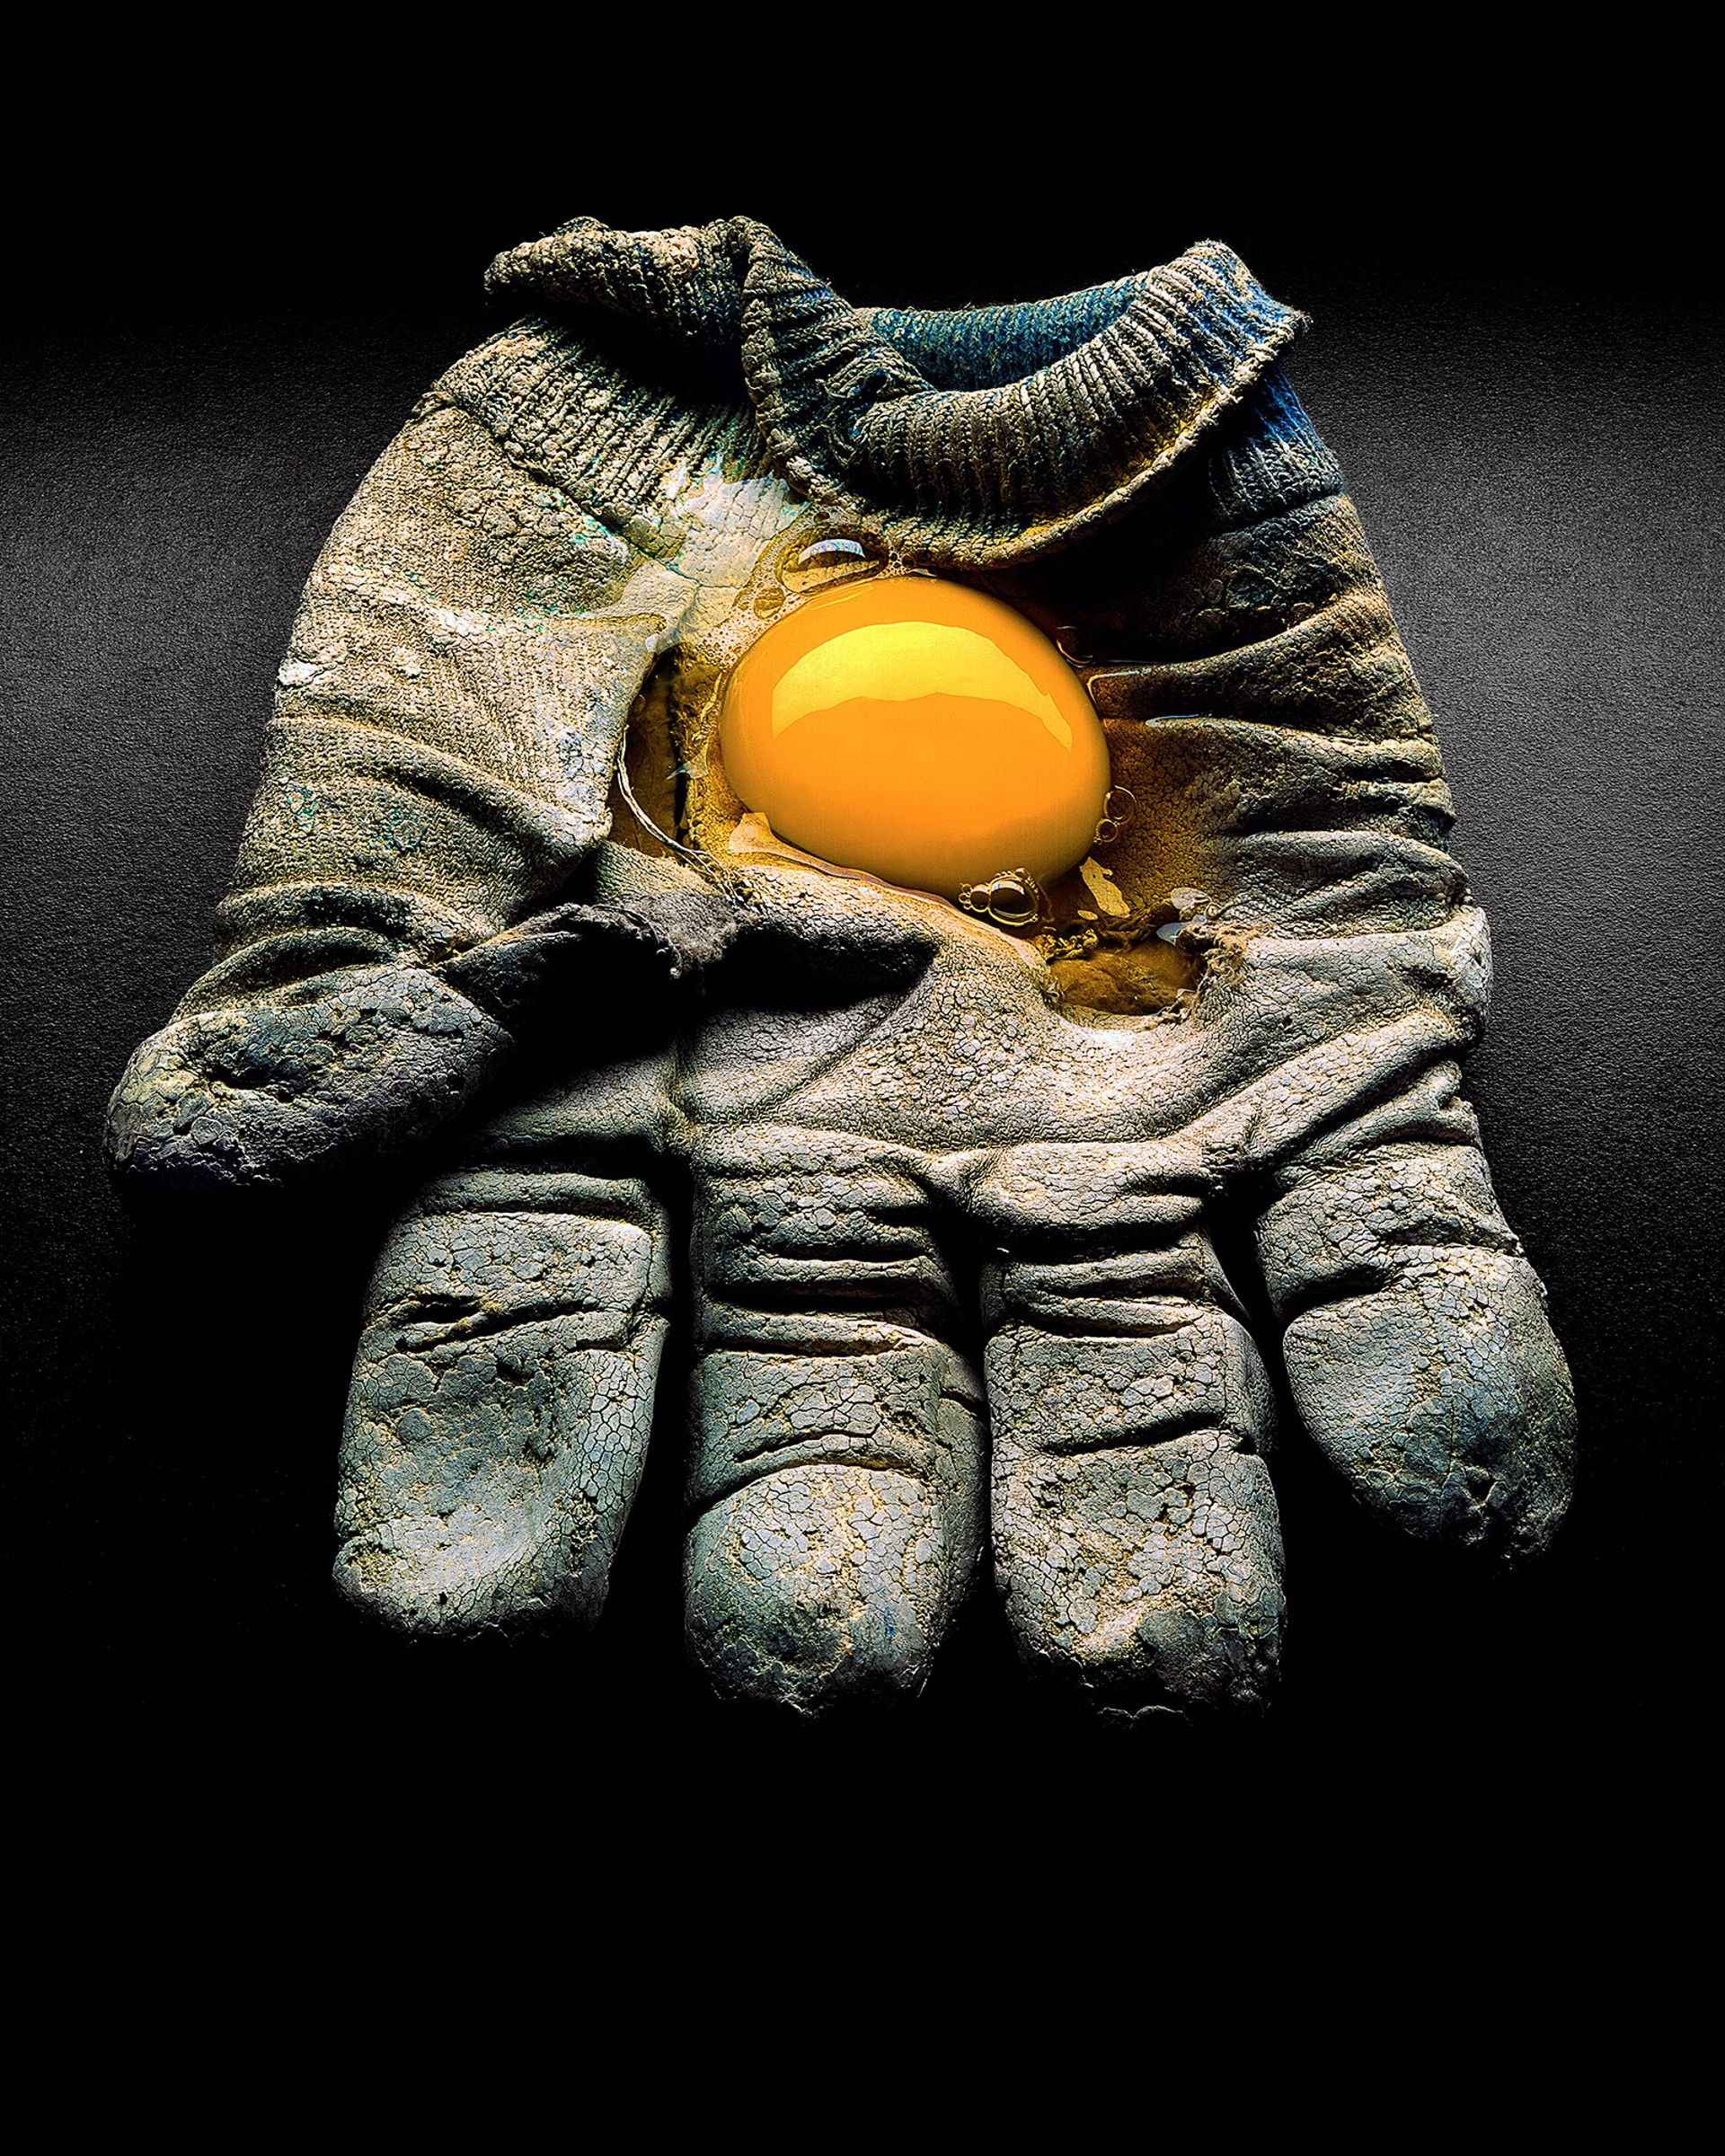 Glove Benedict          Ed. 3/20 by Phil Marco